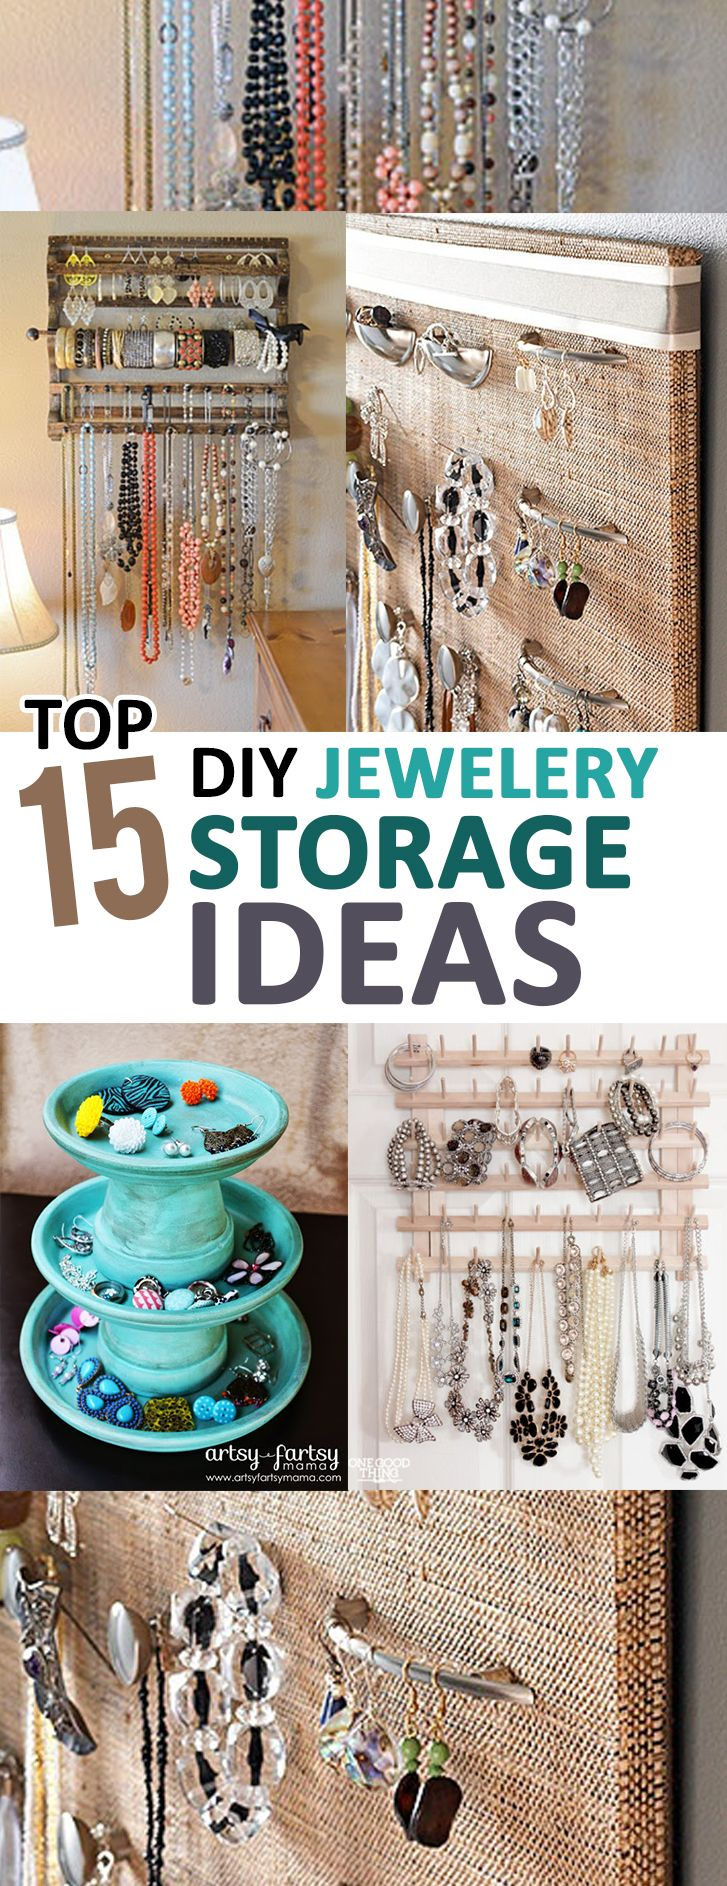 Top 15 DIY Jewelry Storage Ideas 236